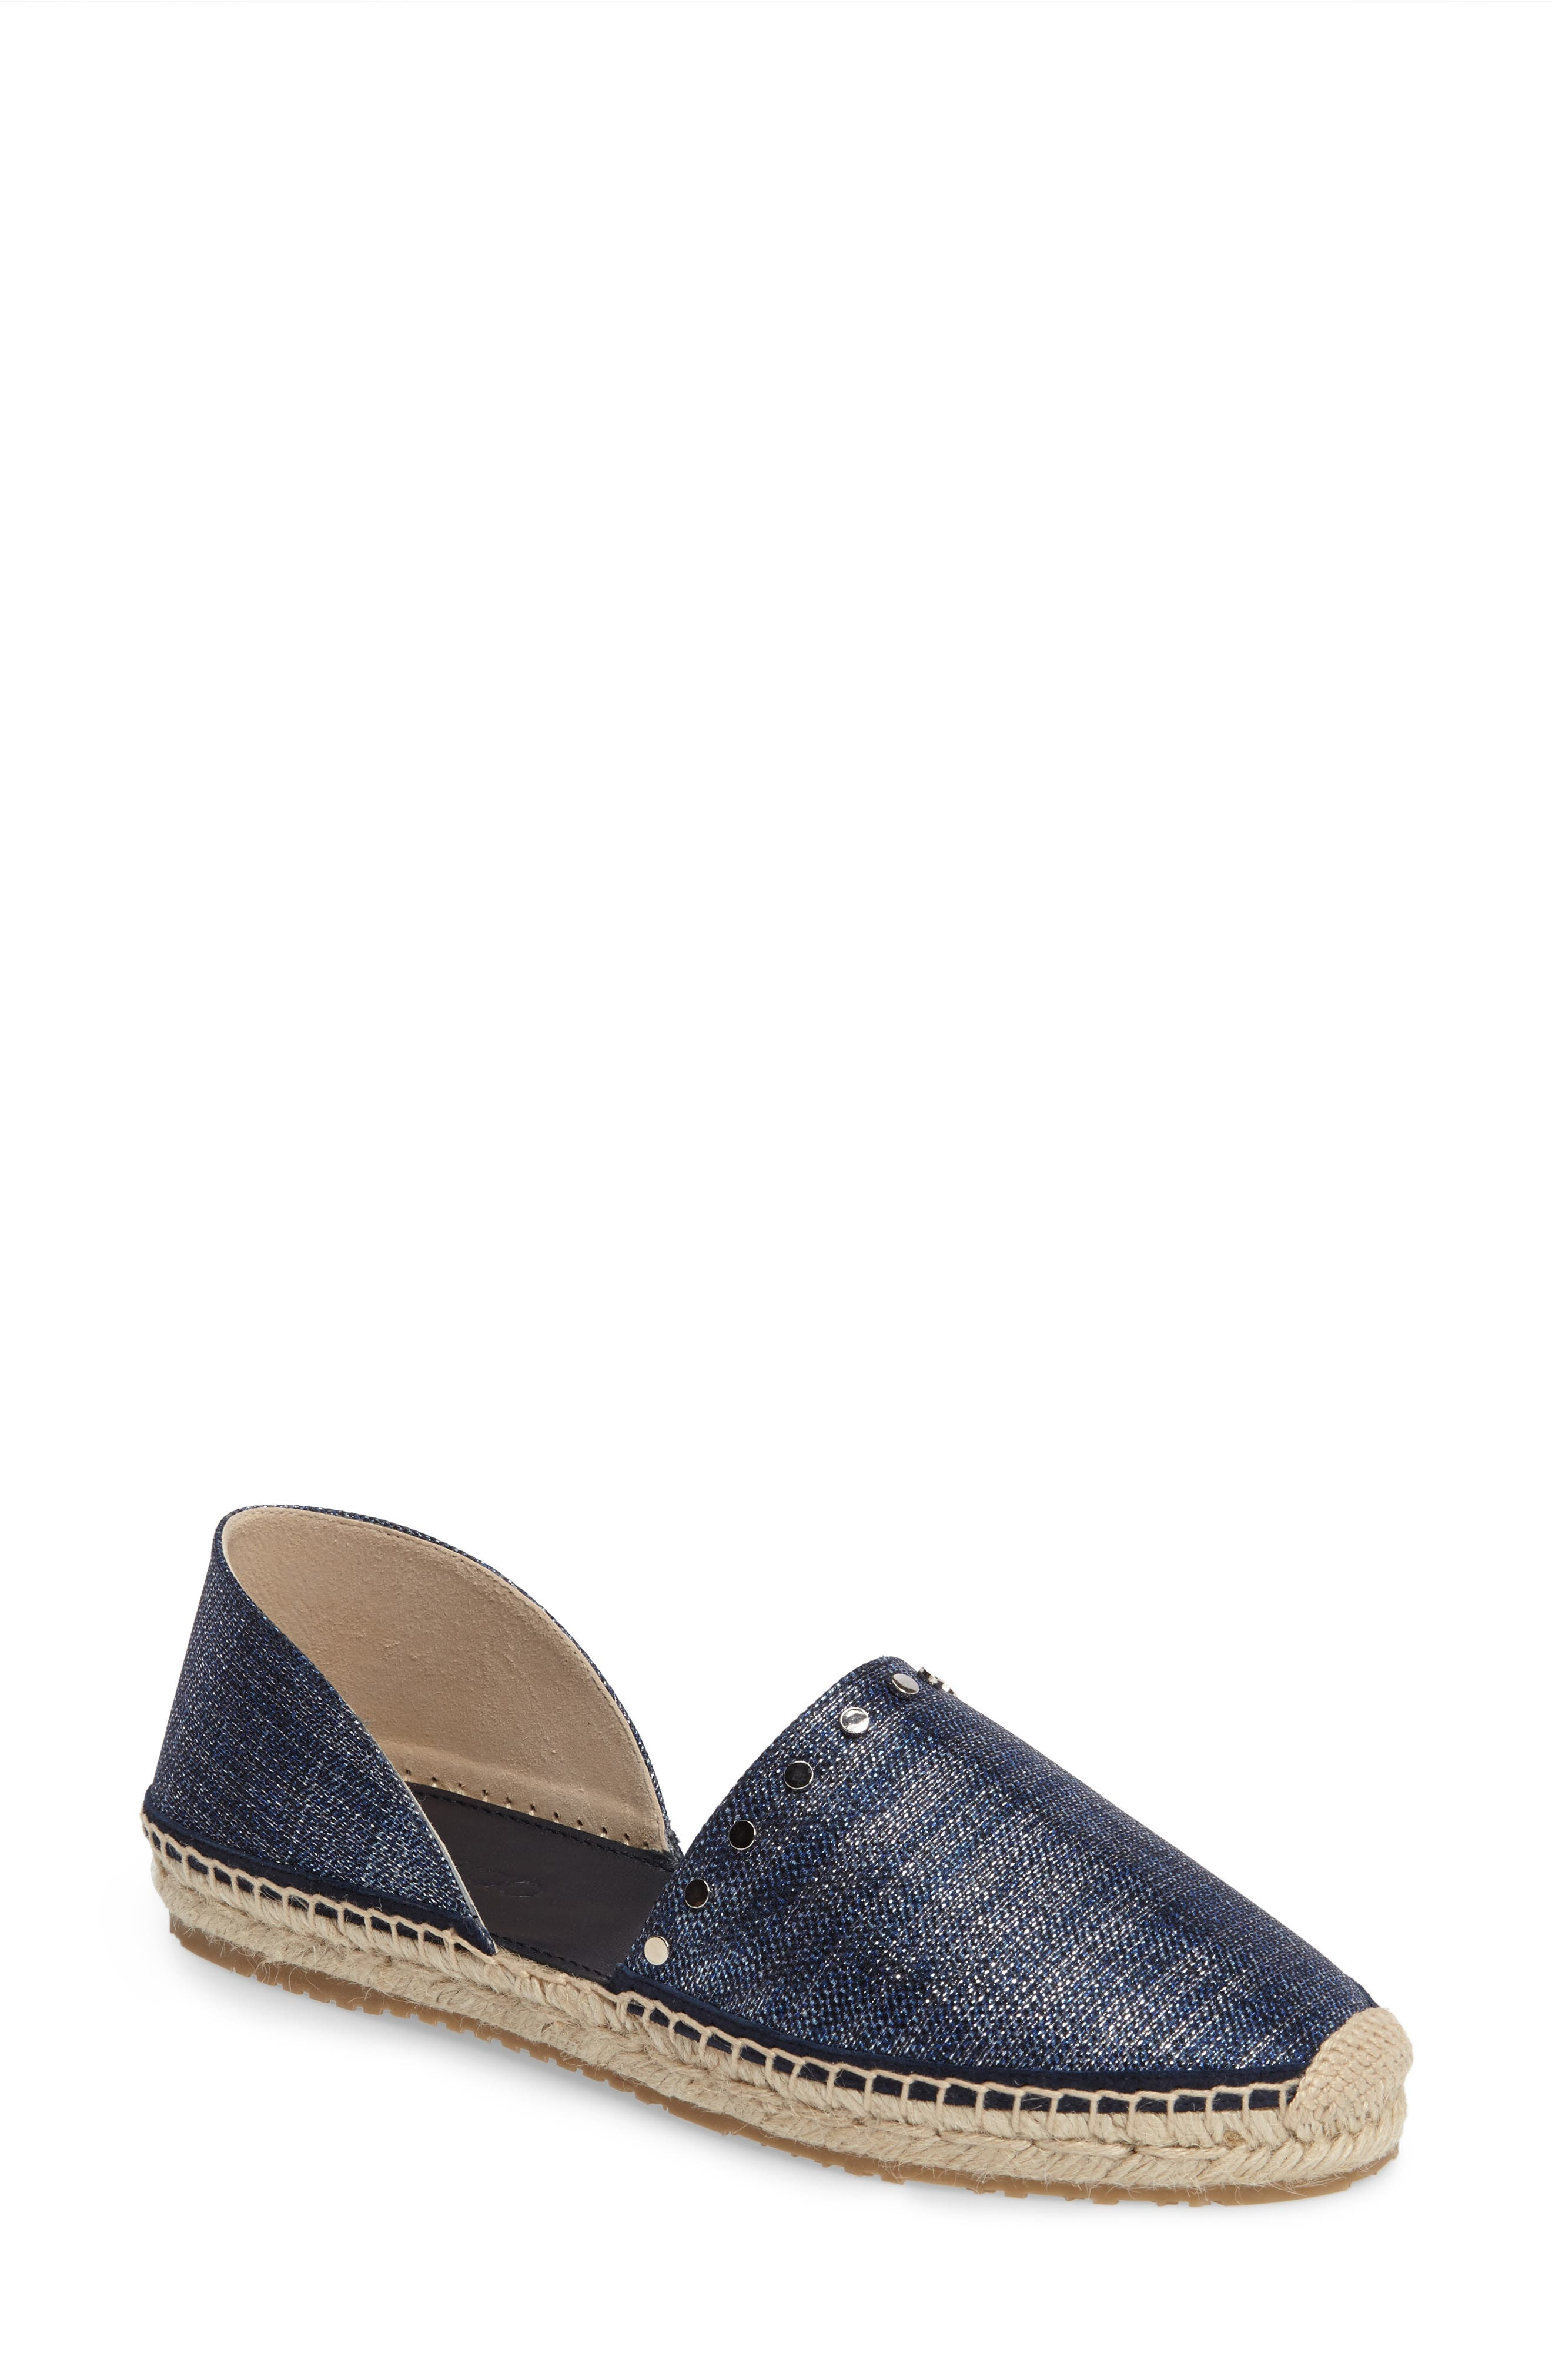 Main Image - Jimmy Choo Split Espadrille Flat (Women)